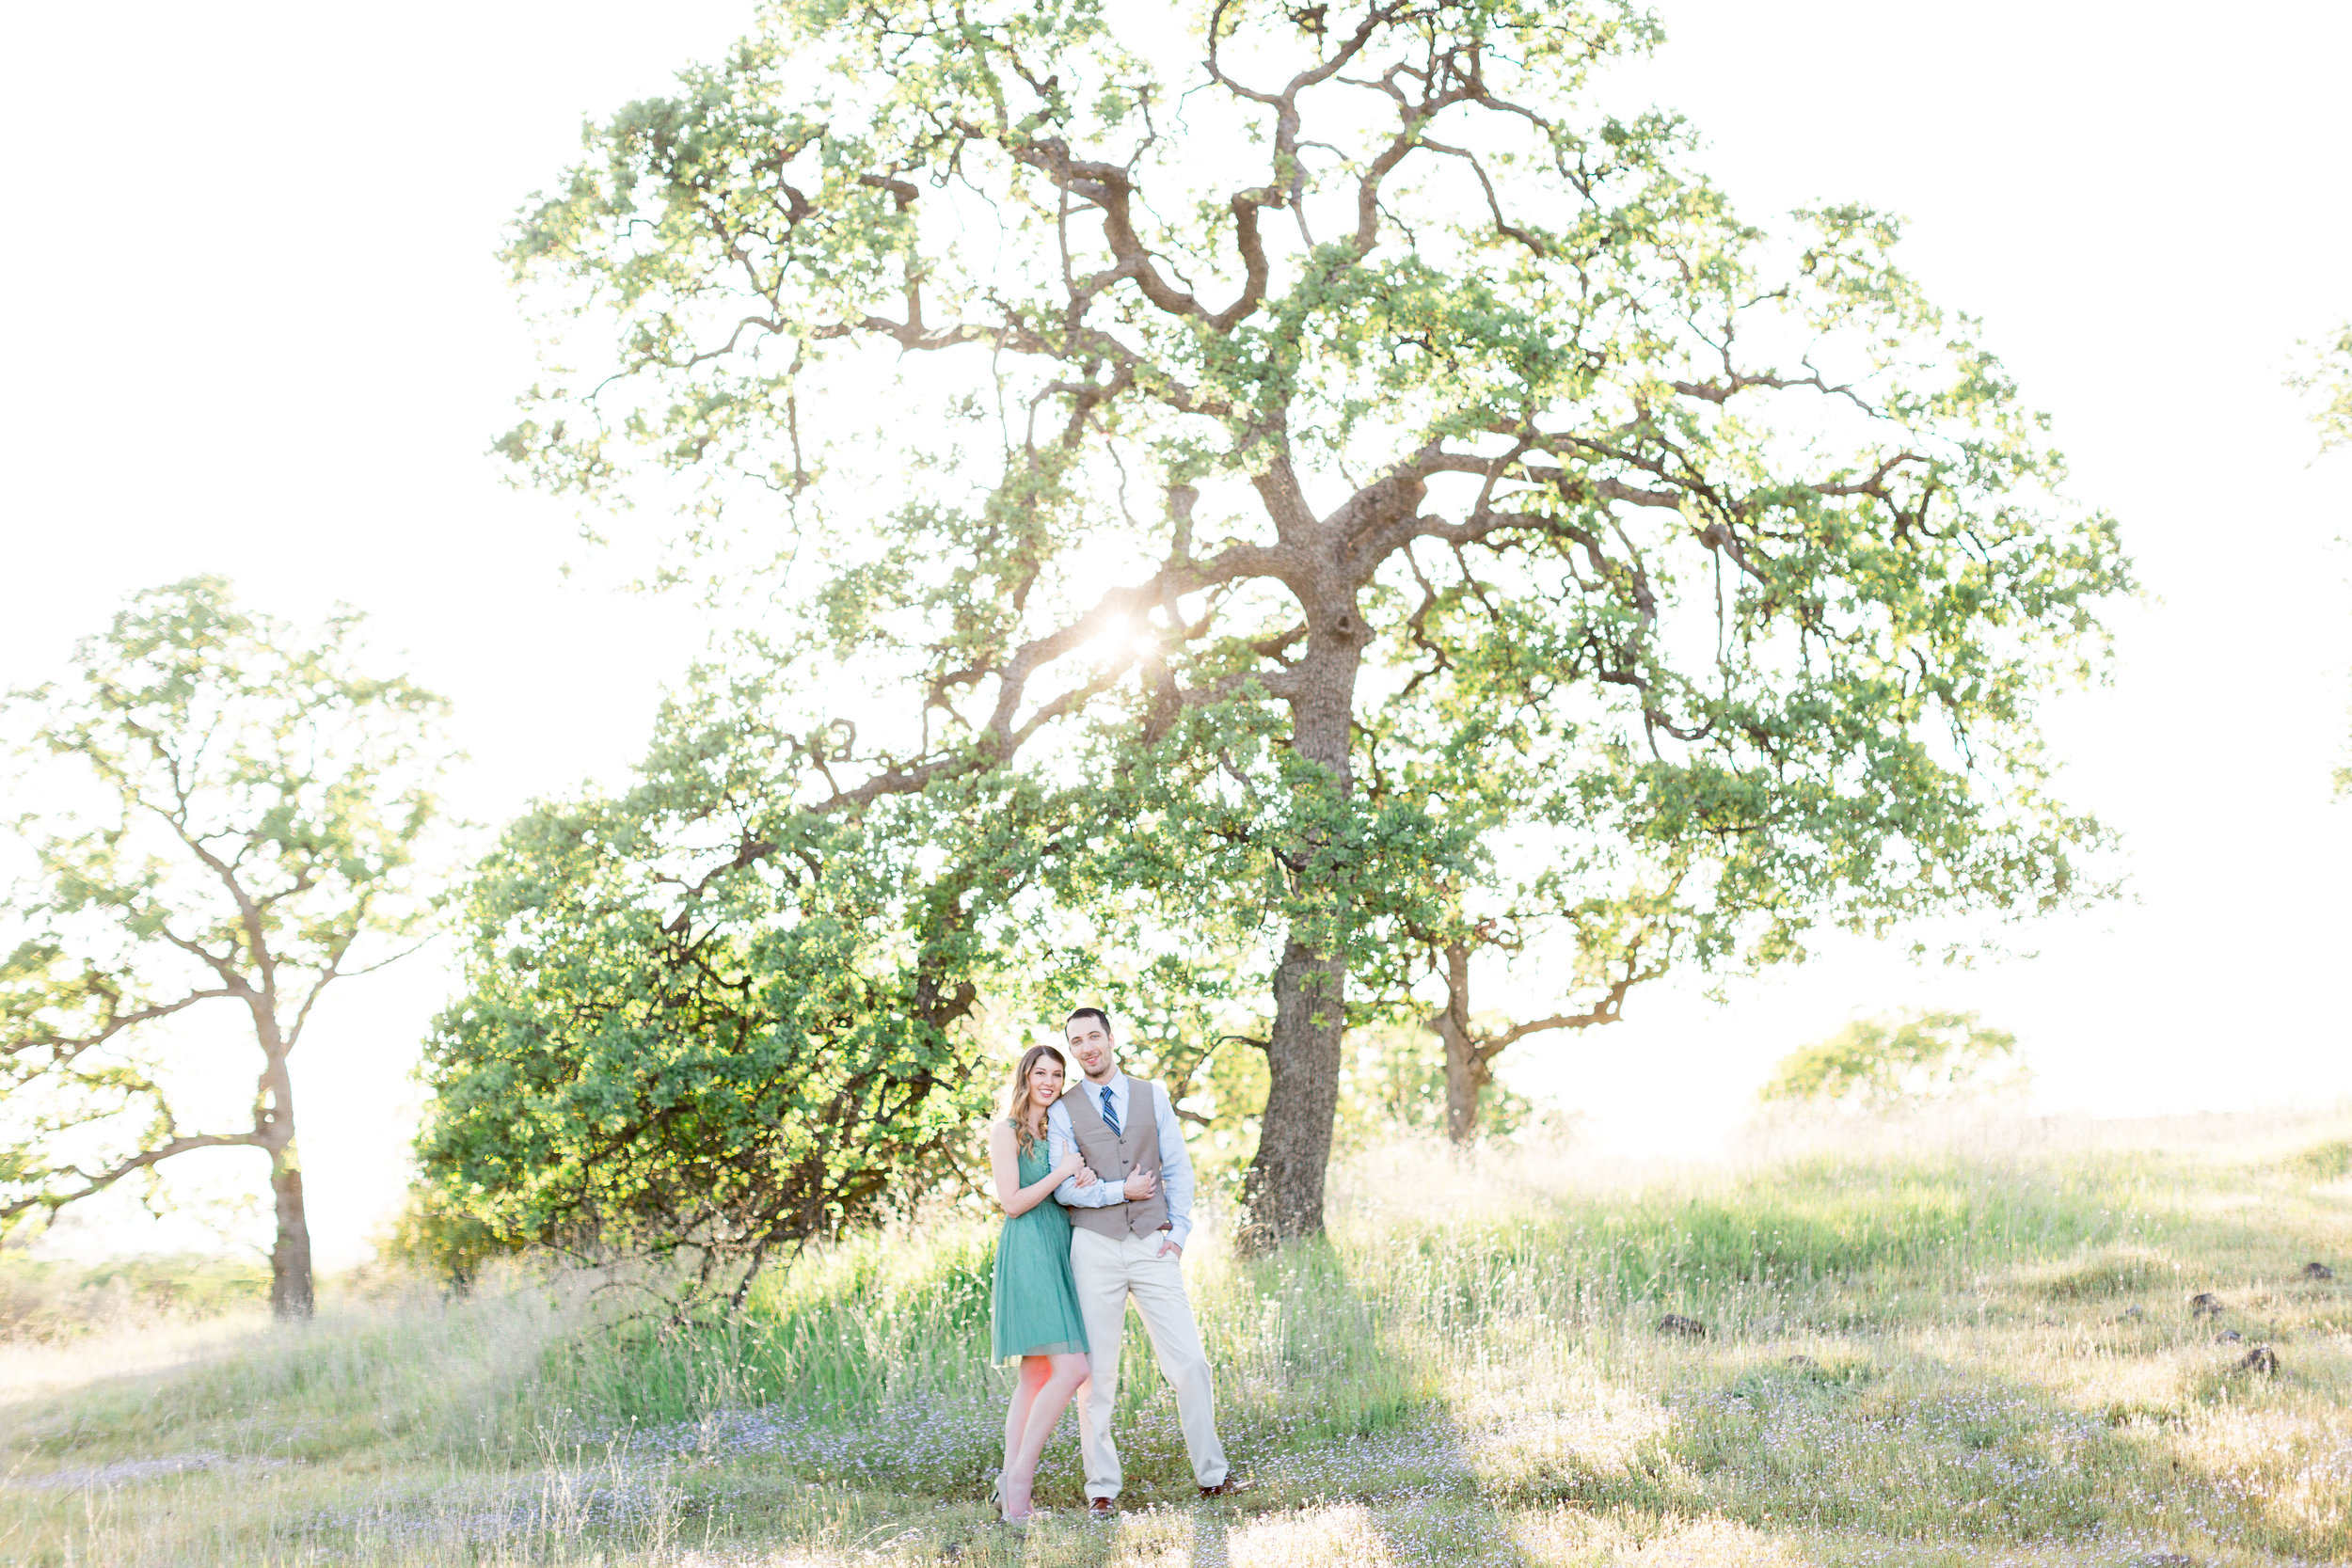 upper-bidwell-chico-california-engagement-session-trebrittany-75.jpg